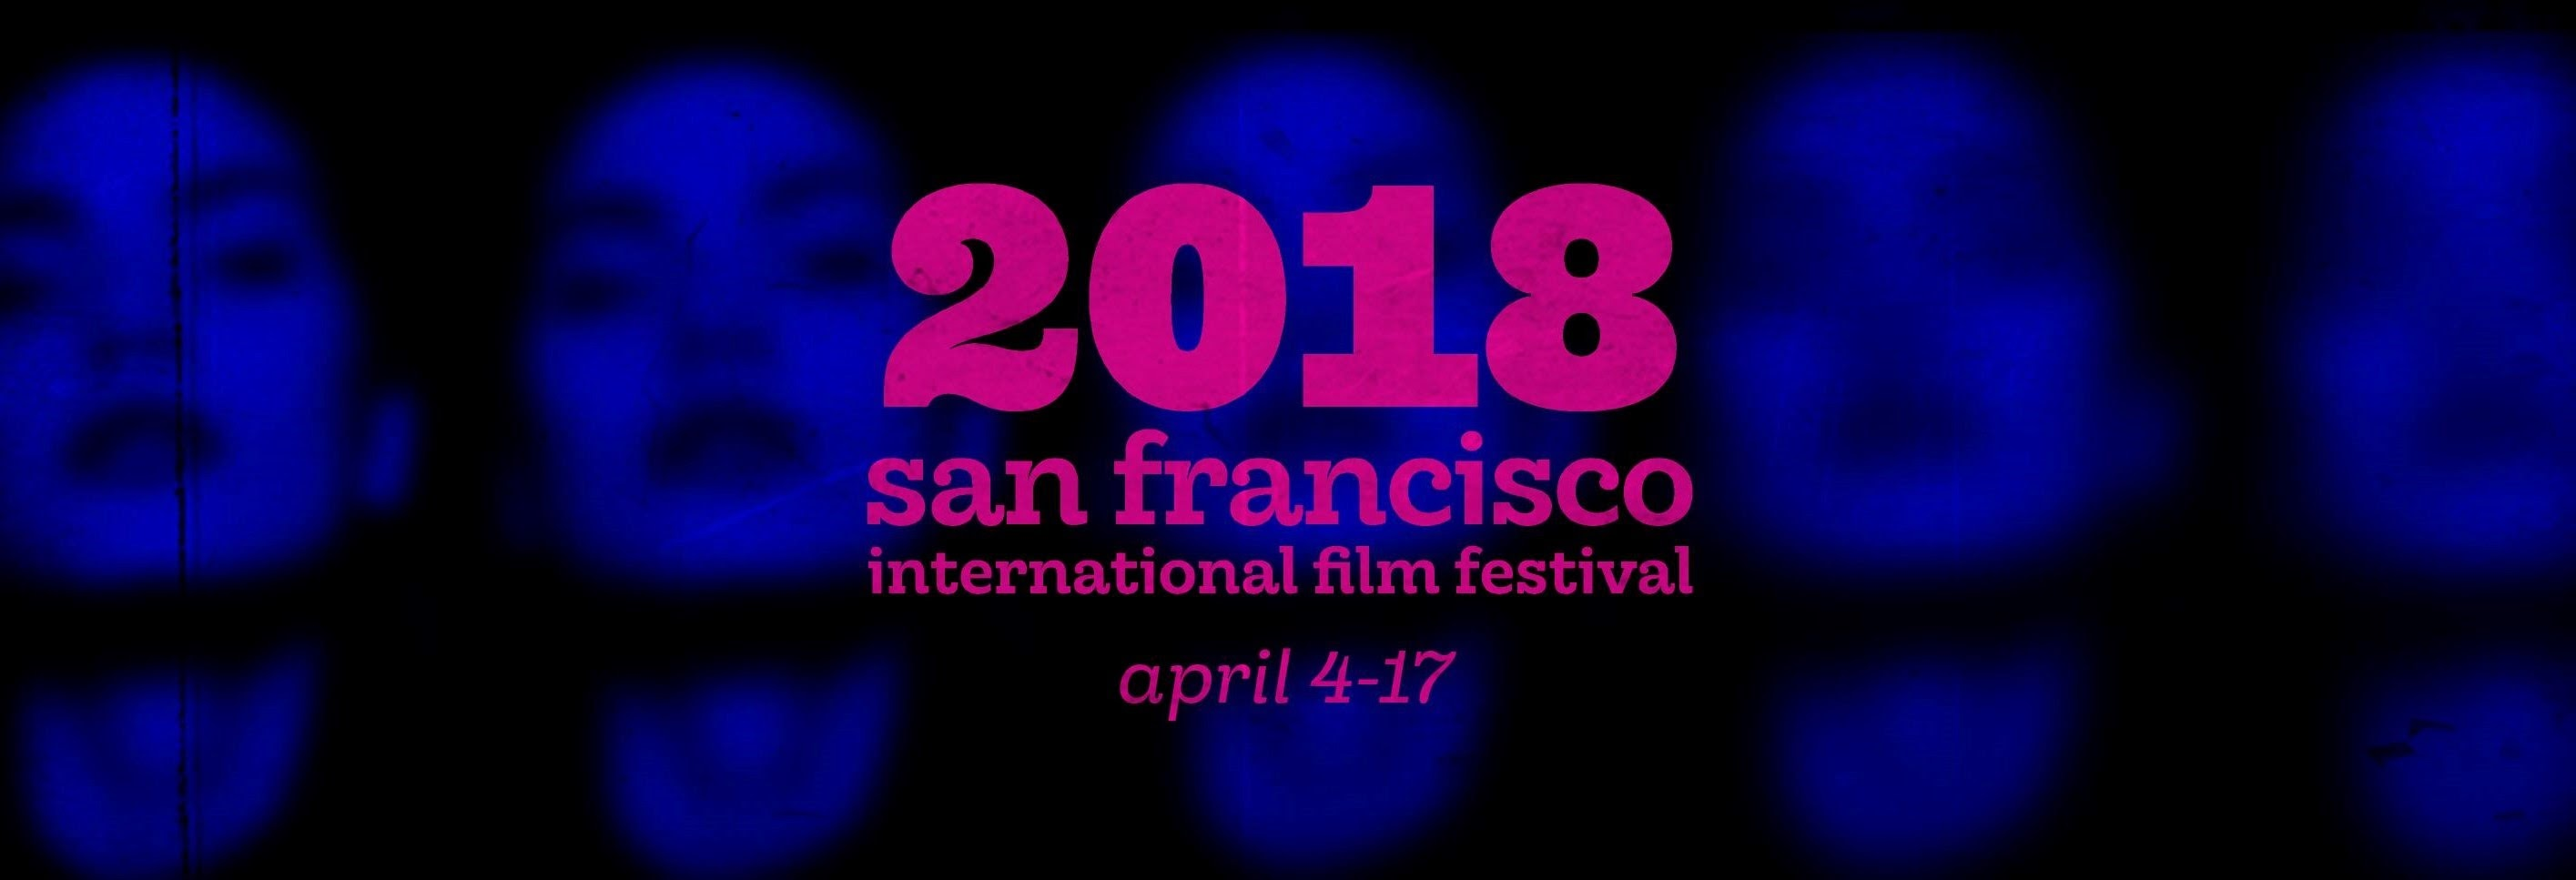 The 61st San Francisco International Film Festival